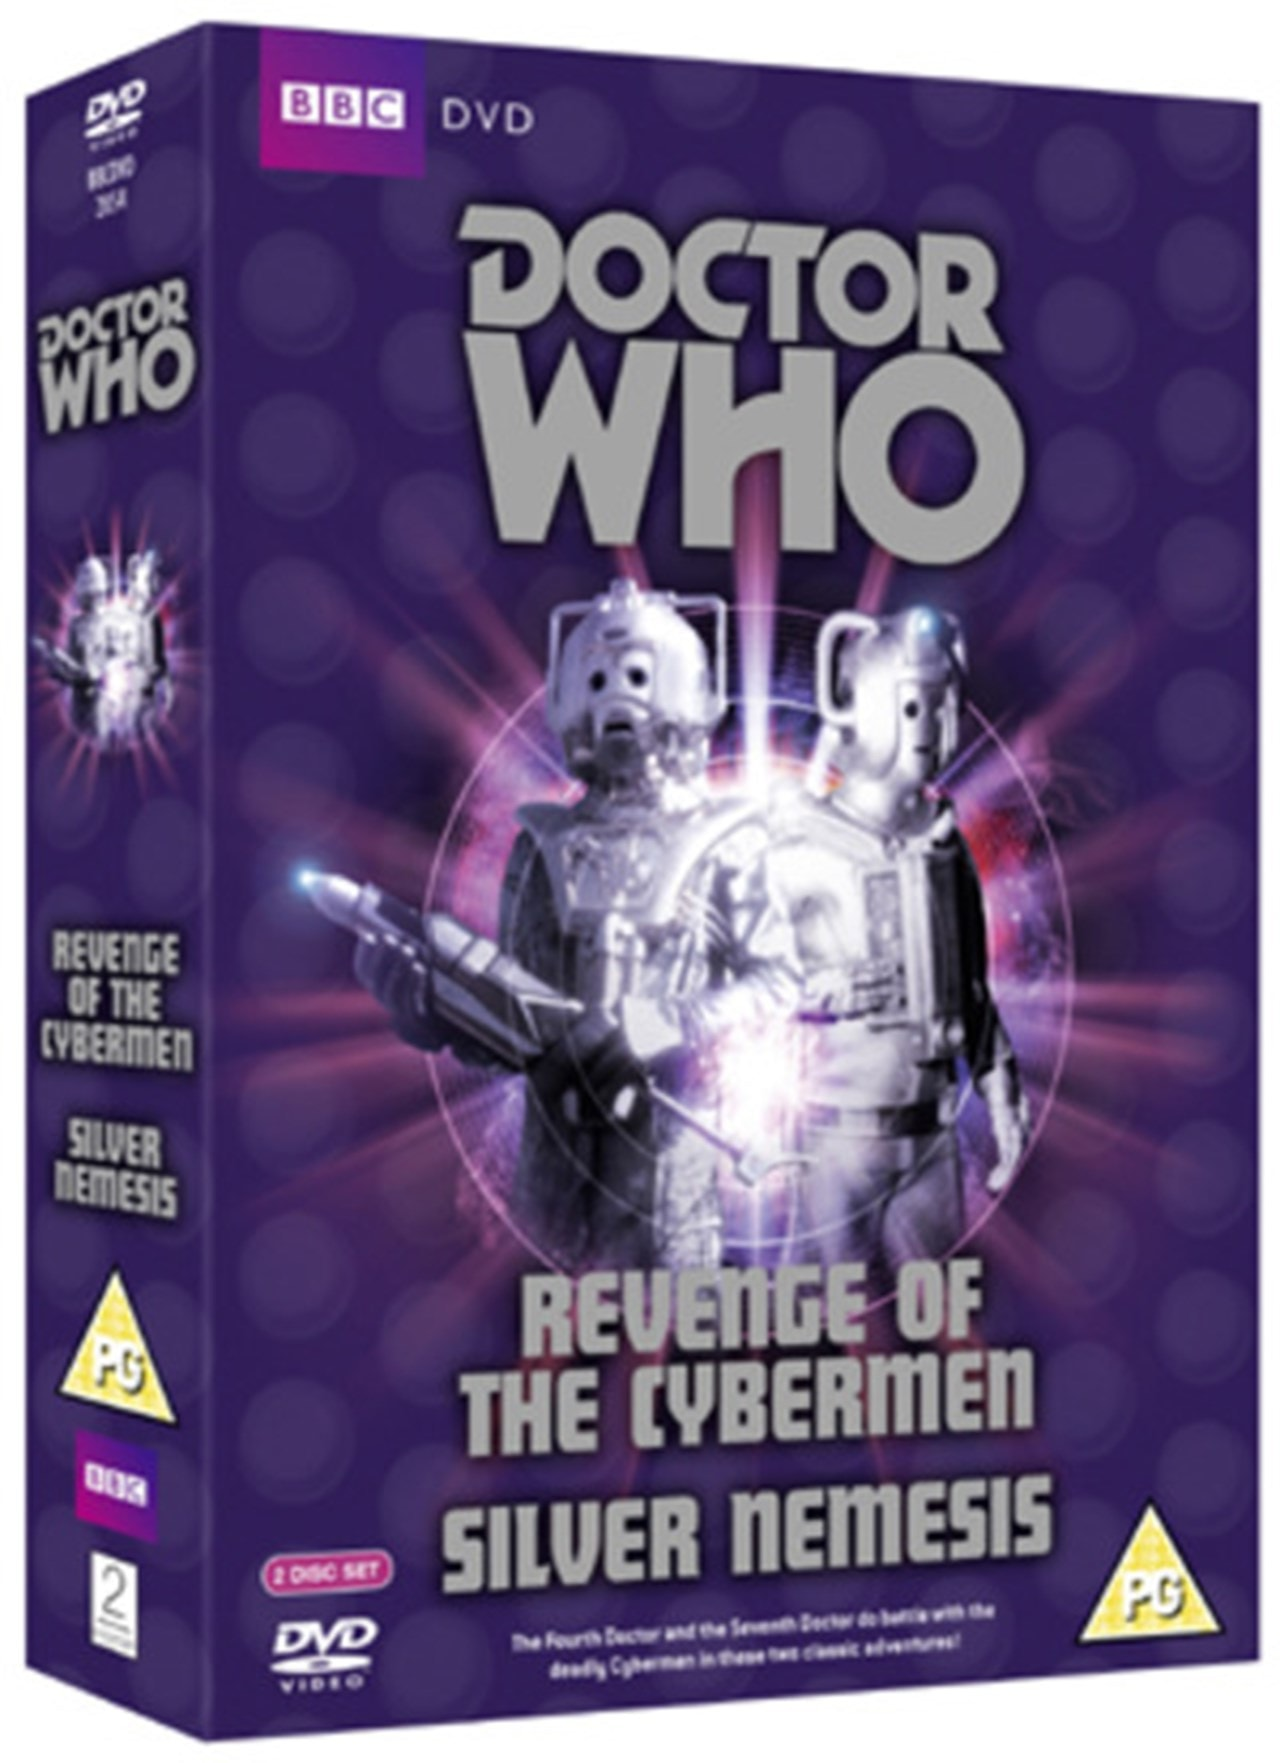 Doctor Who: Cybermen Collection - 1